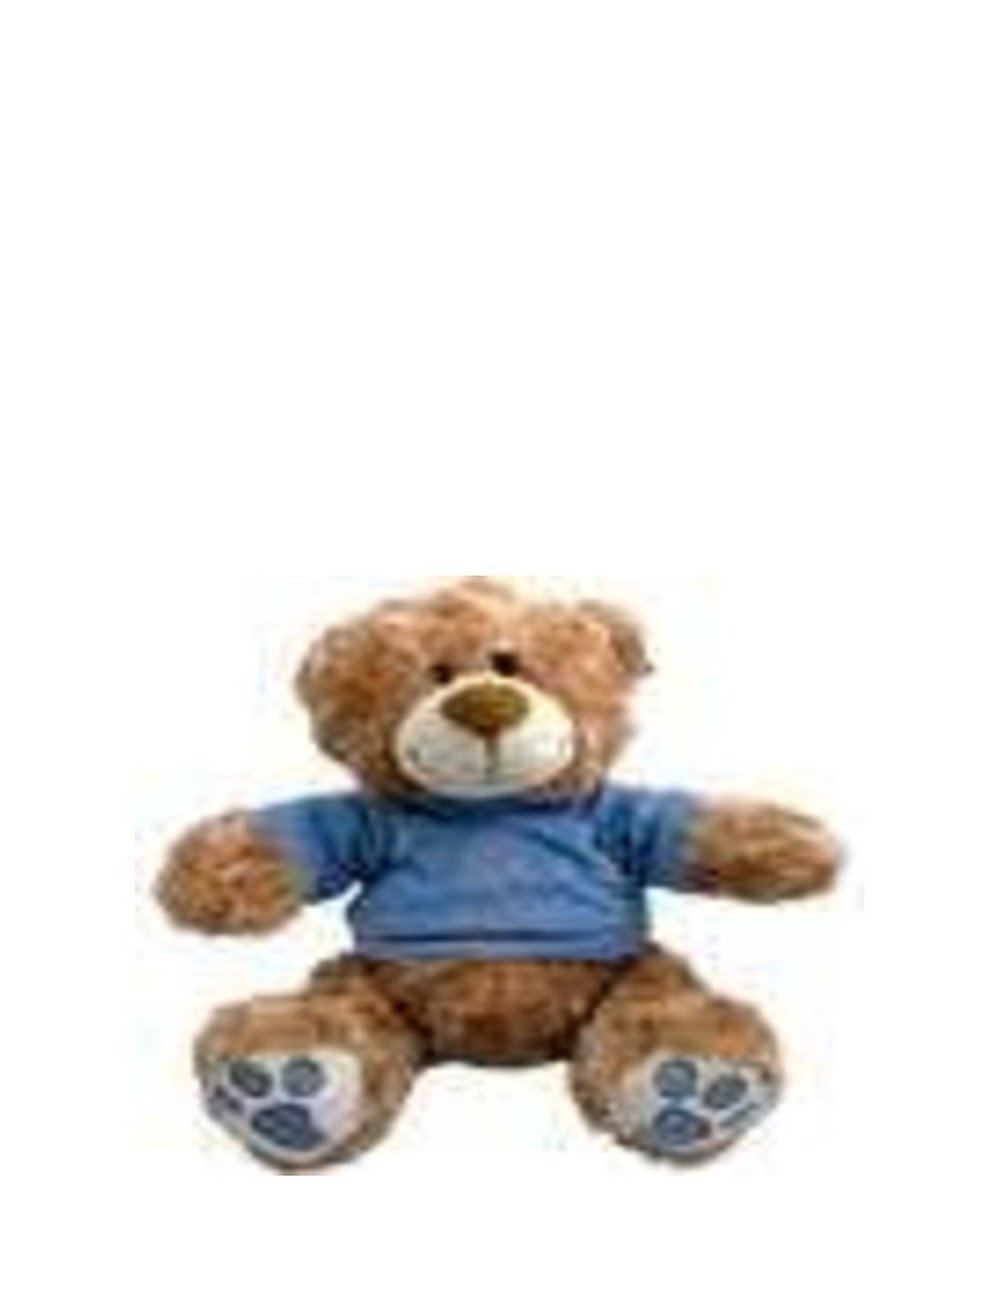 Having a baby boy or know someone that is? Get them this celbratory teddy bear for their newborn!